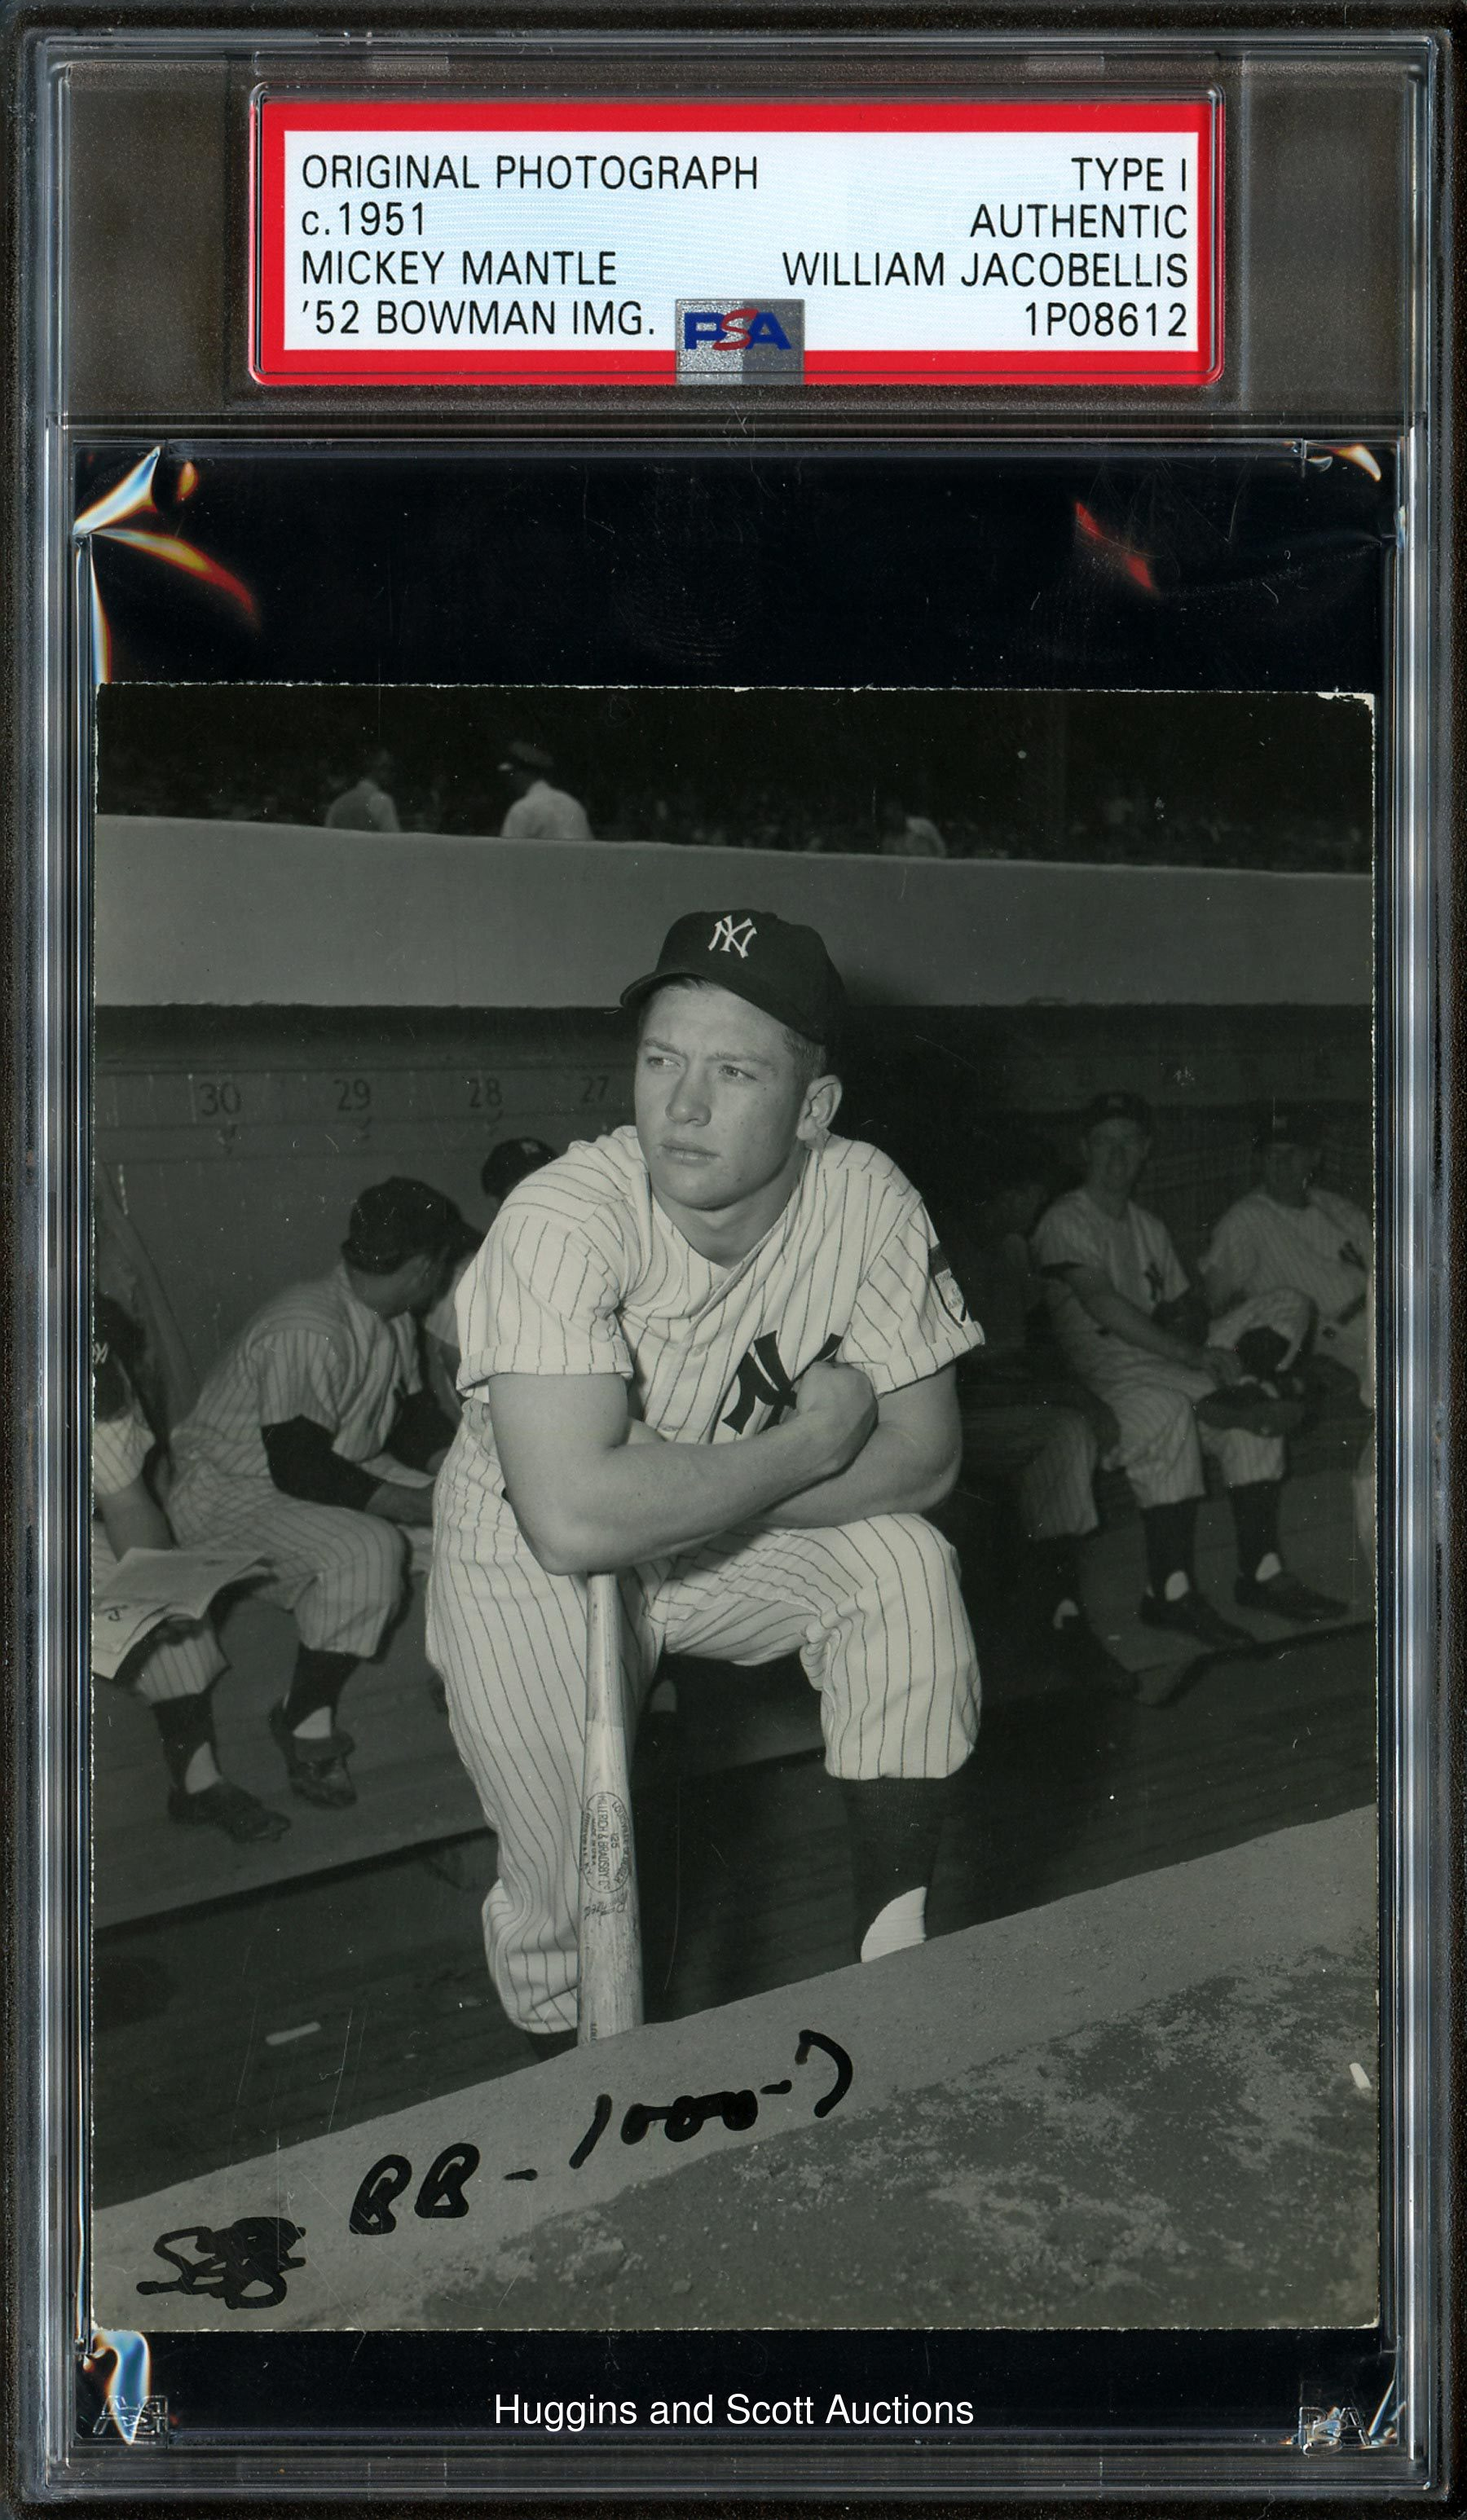 1951 Mickey Mantle Rookie Contact Proof Original Photo By Jacobellis